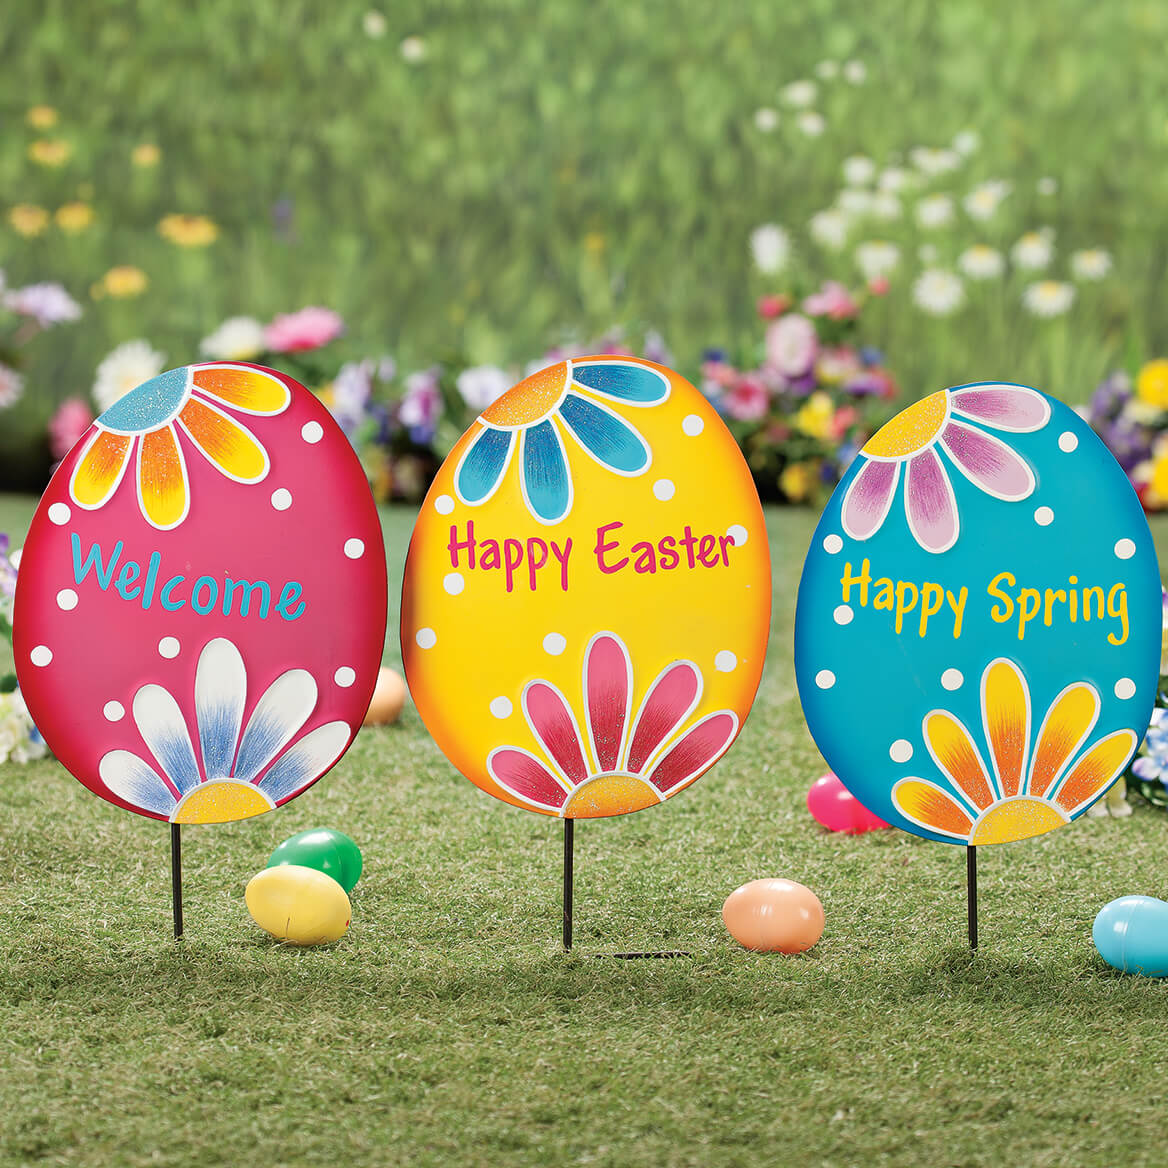 Metal Easter Egg Stakes Set of 3 by Fox River Creations™-365863